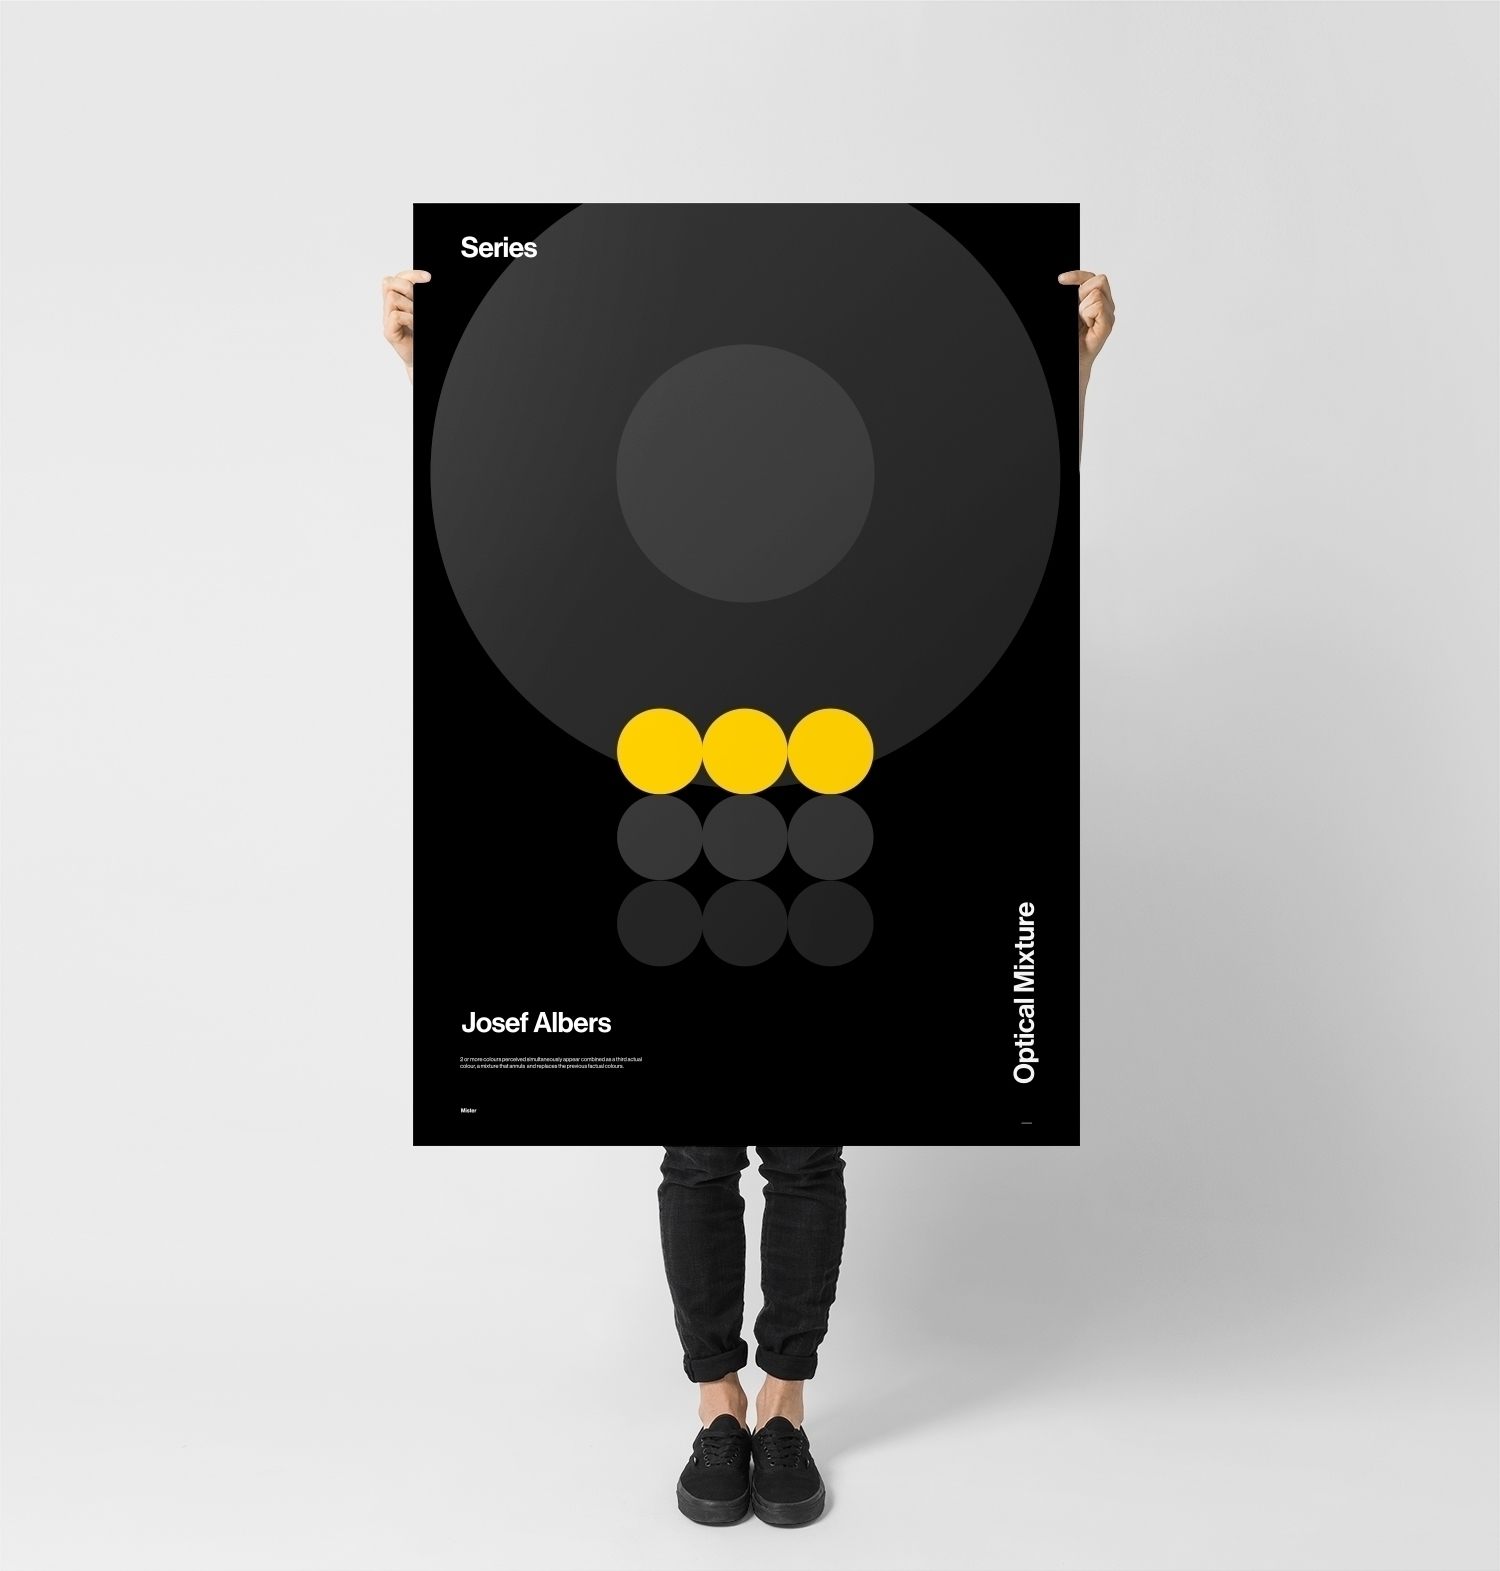 Poster - graphicdesign, design, graphic - mike | ello